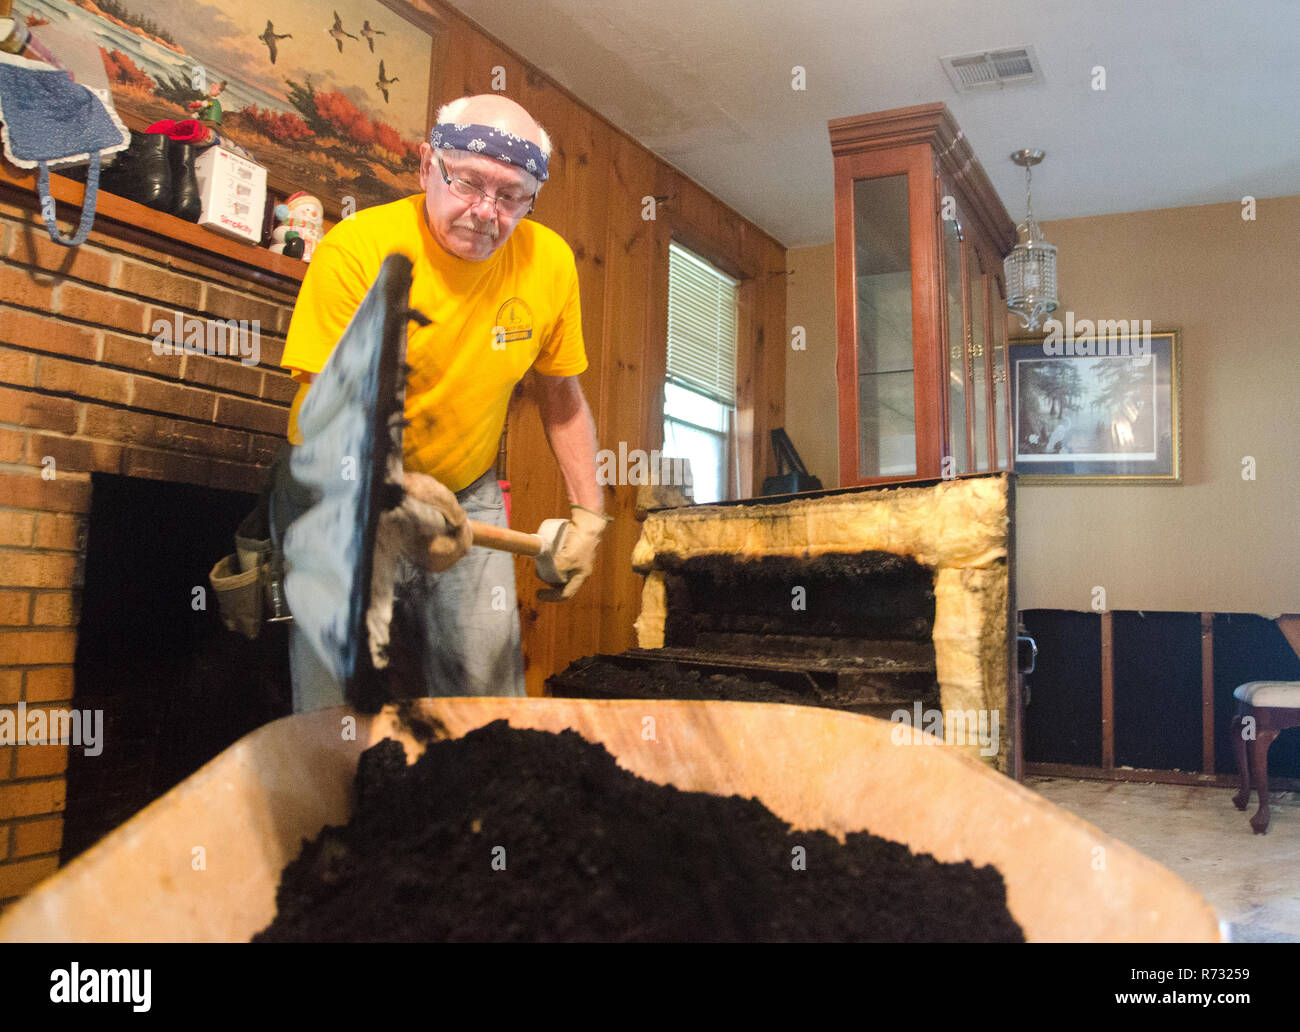 A Southern Baptist Disaster Relief volunteer shovels soot from a fireplace after a flood in Baton Rouge, Louisiana. - Stock Image